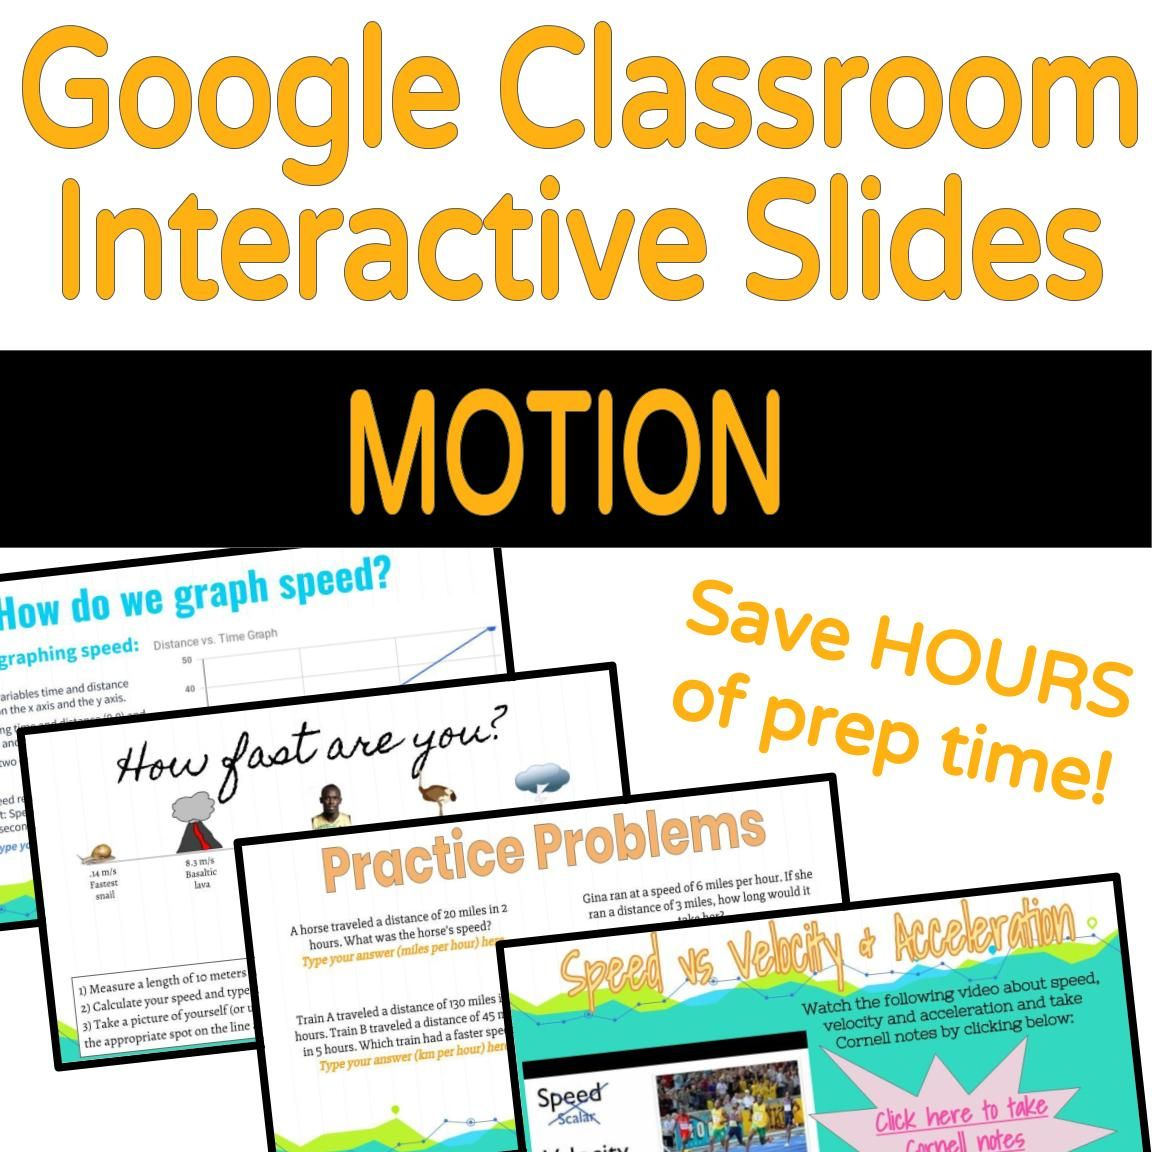 Google Classroom Interactive Slides Motion Physical